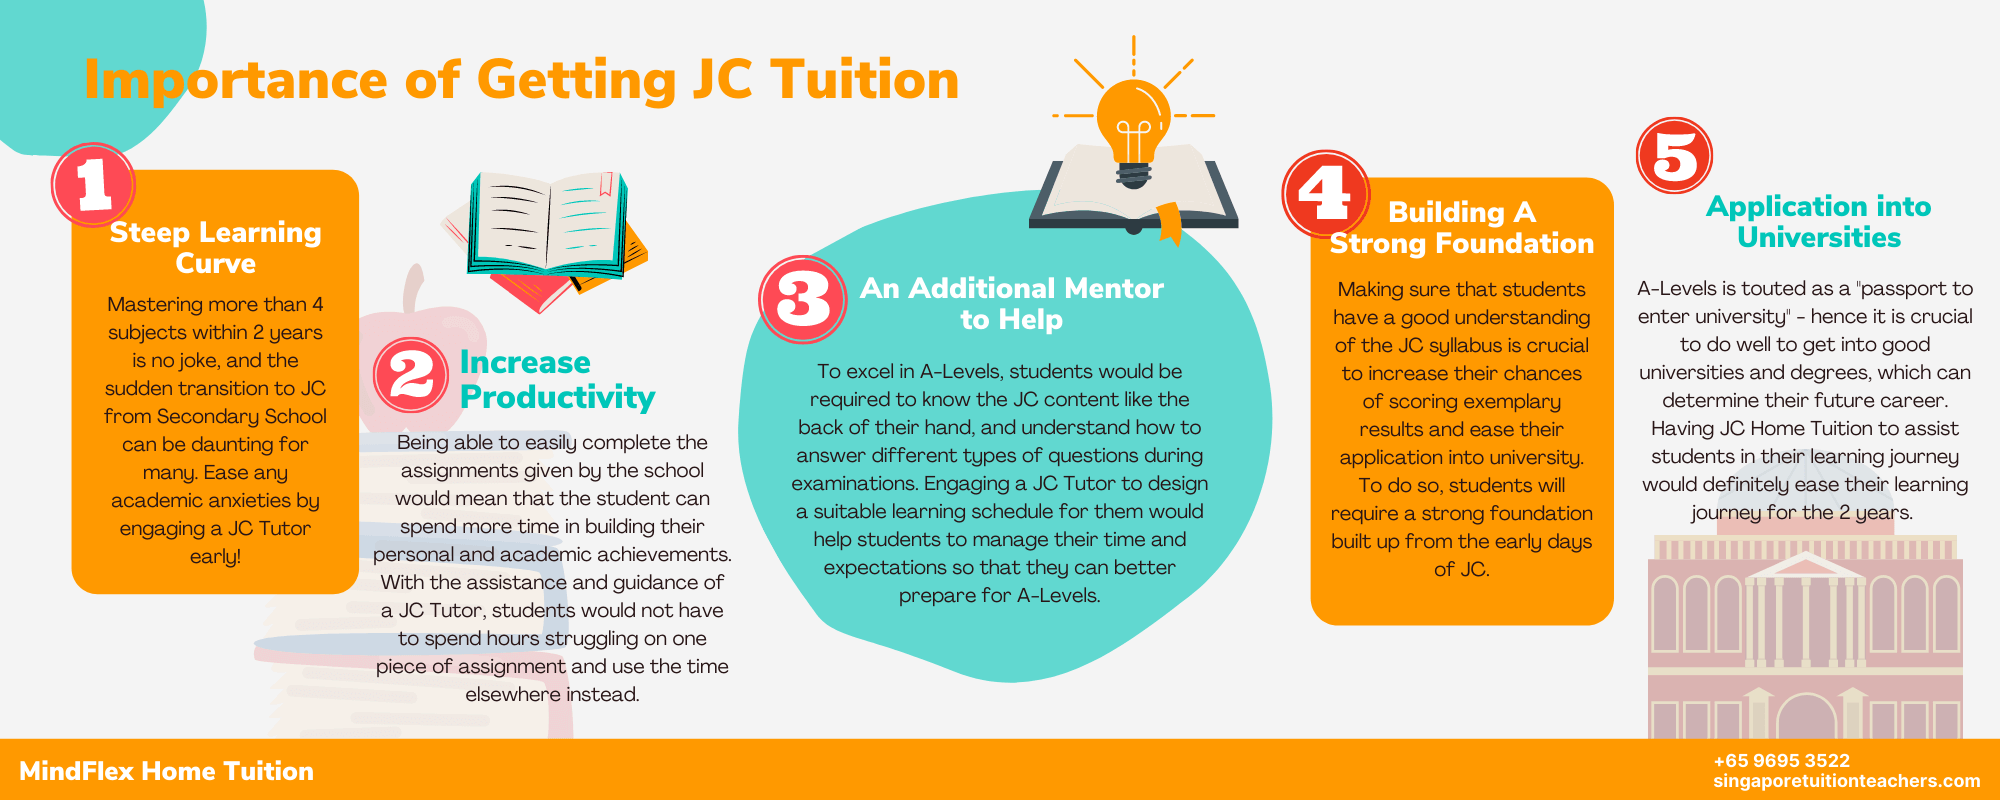 Infographic on Importance of JC Tuition